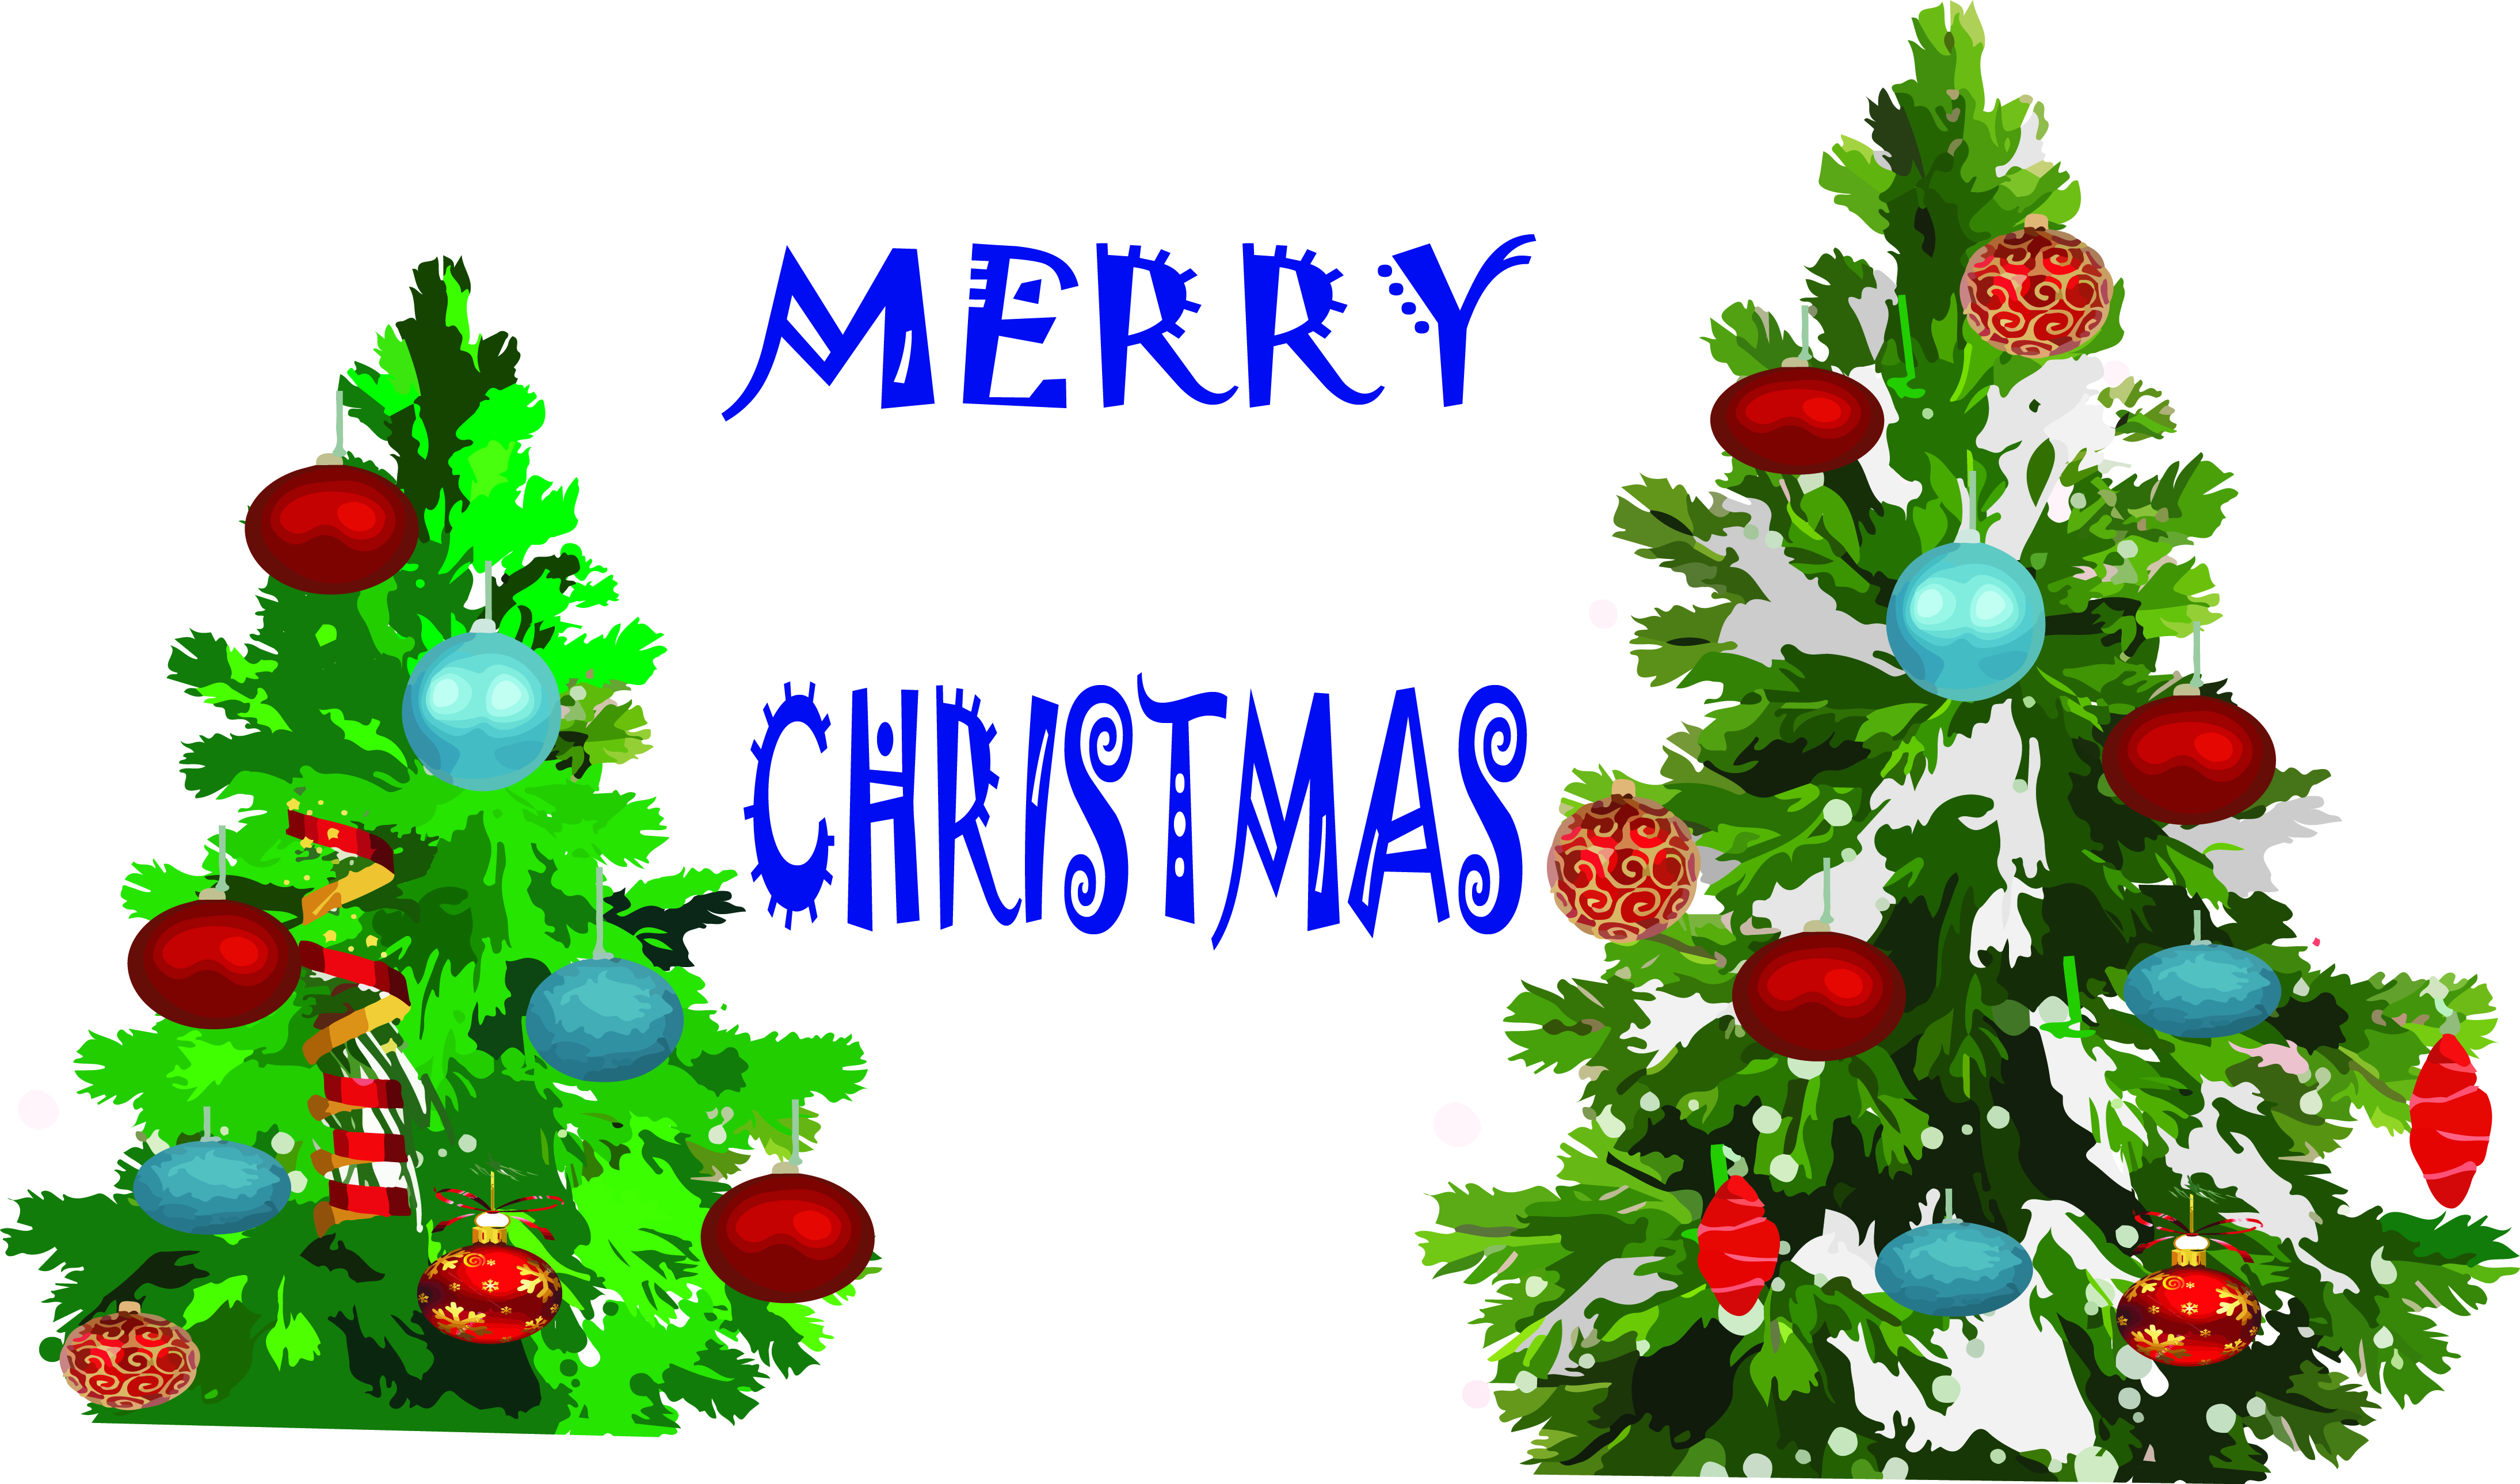 Christmas Clip Art for Sublimation Transfer Printing JPEG PNG Bright Christmas Tree Graphic File for Sublimation Printing